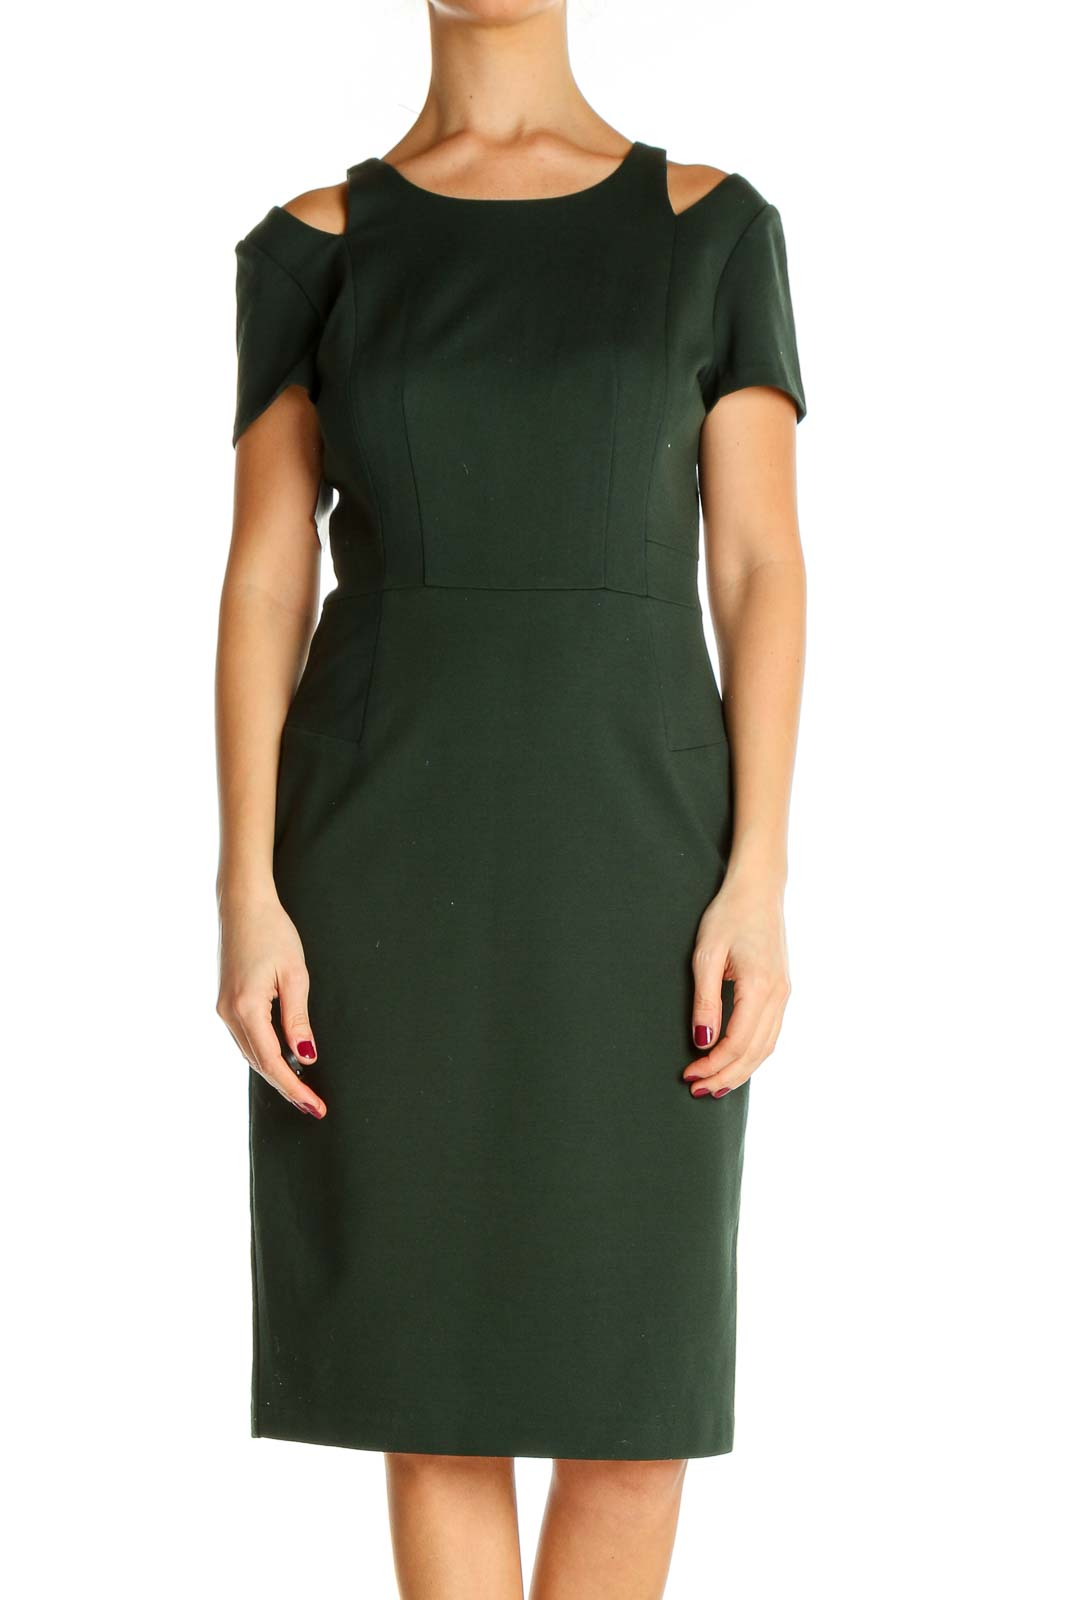 Green Solid Classic Sheath Dress Front